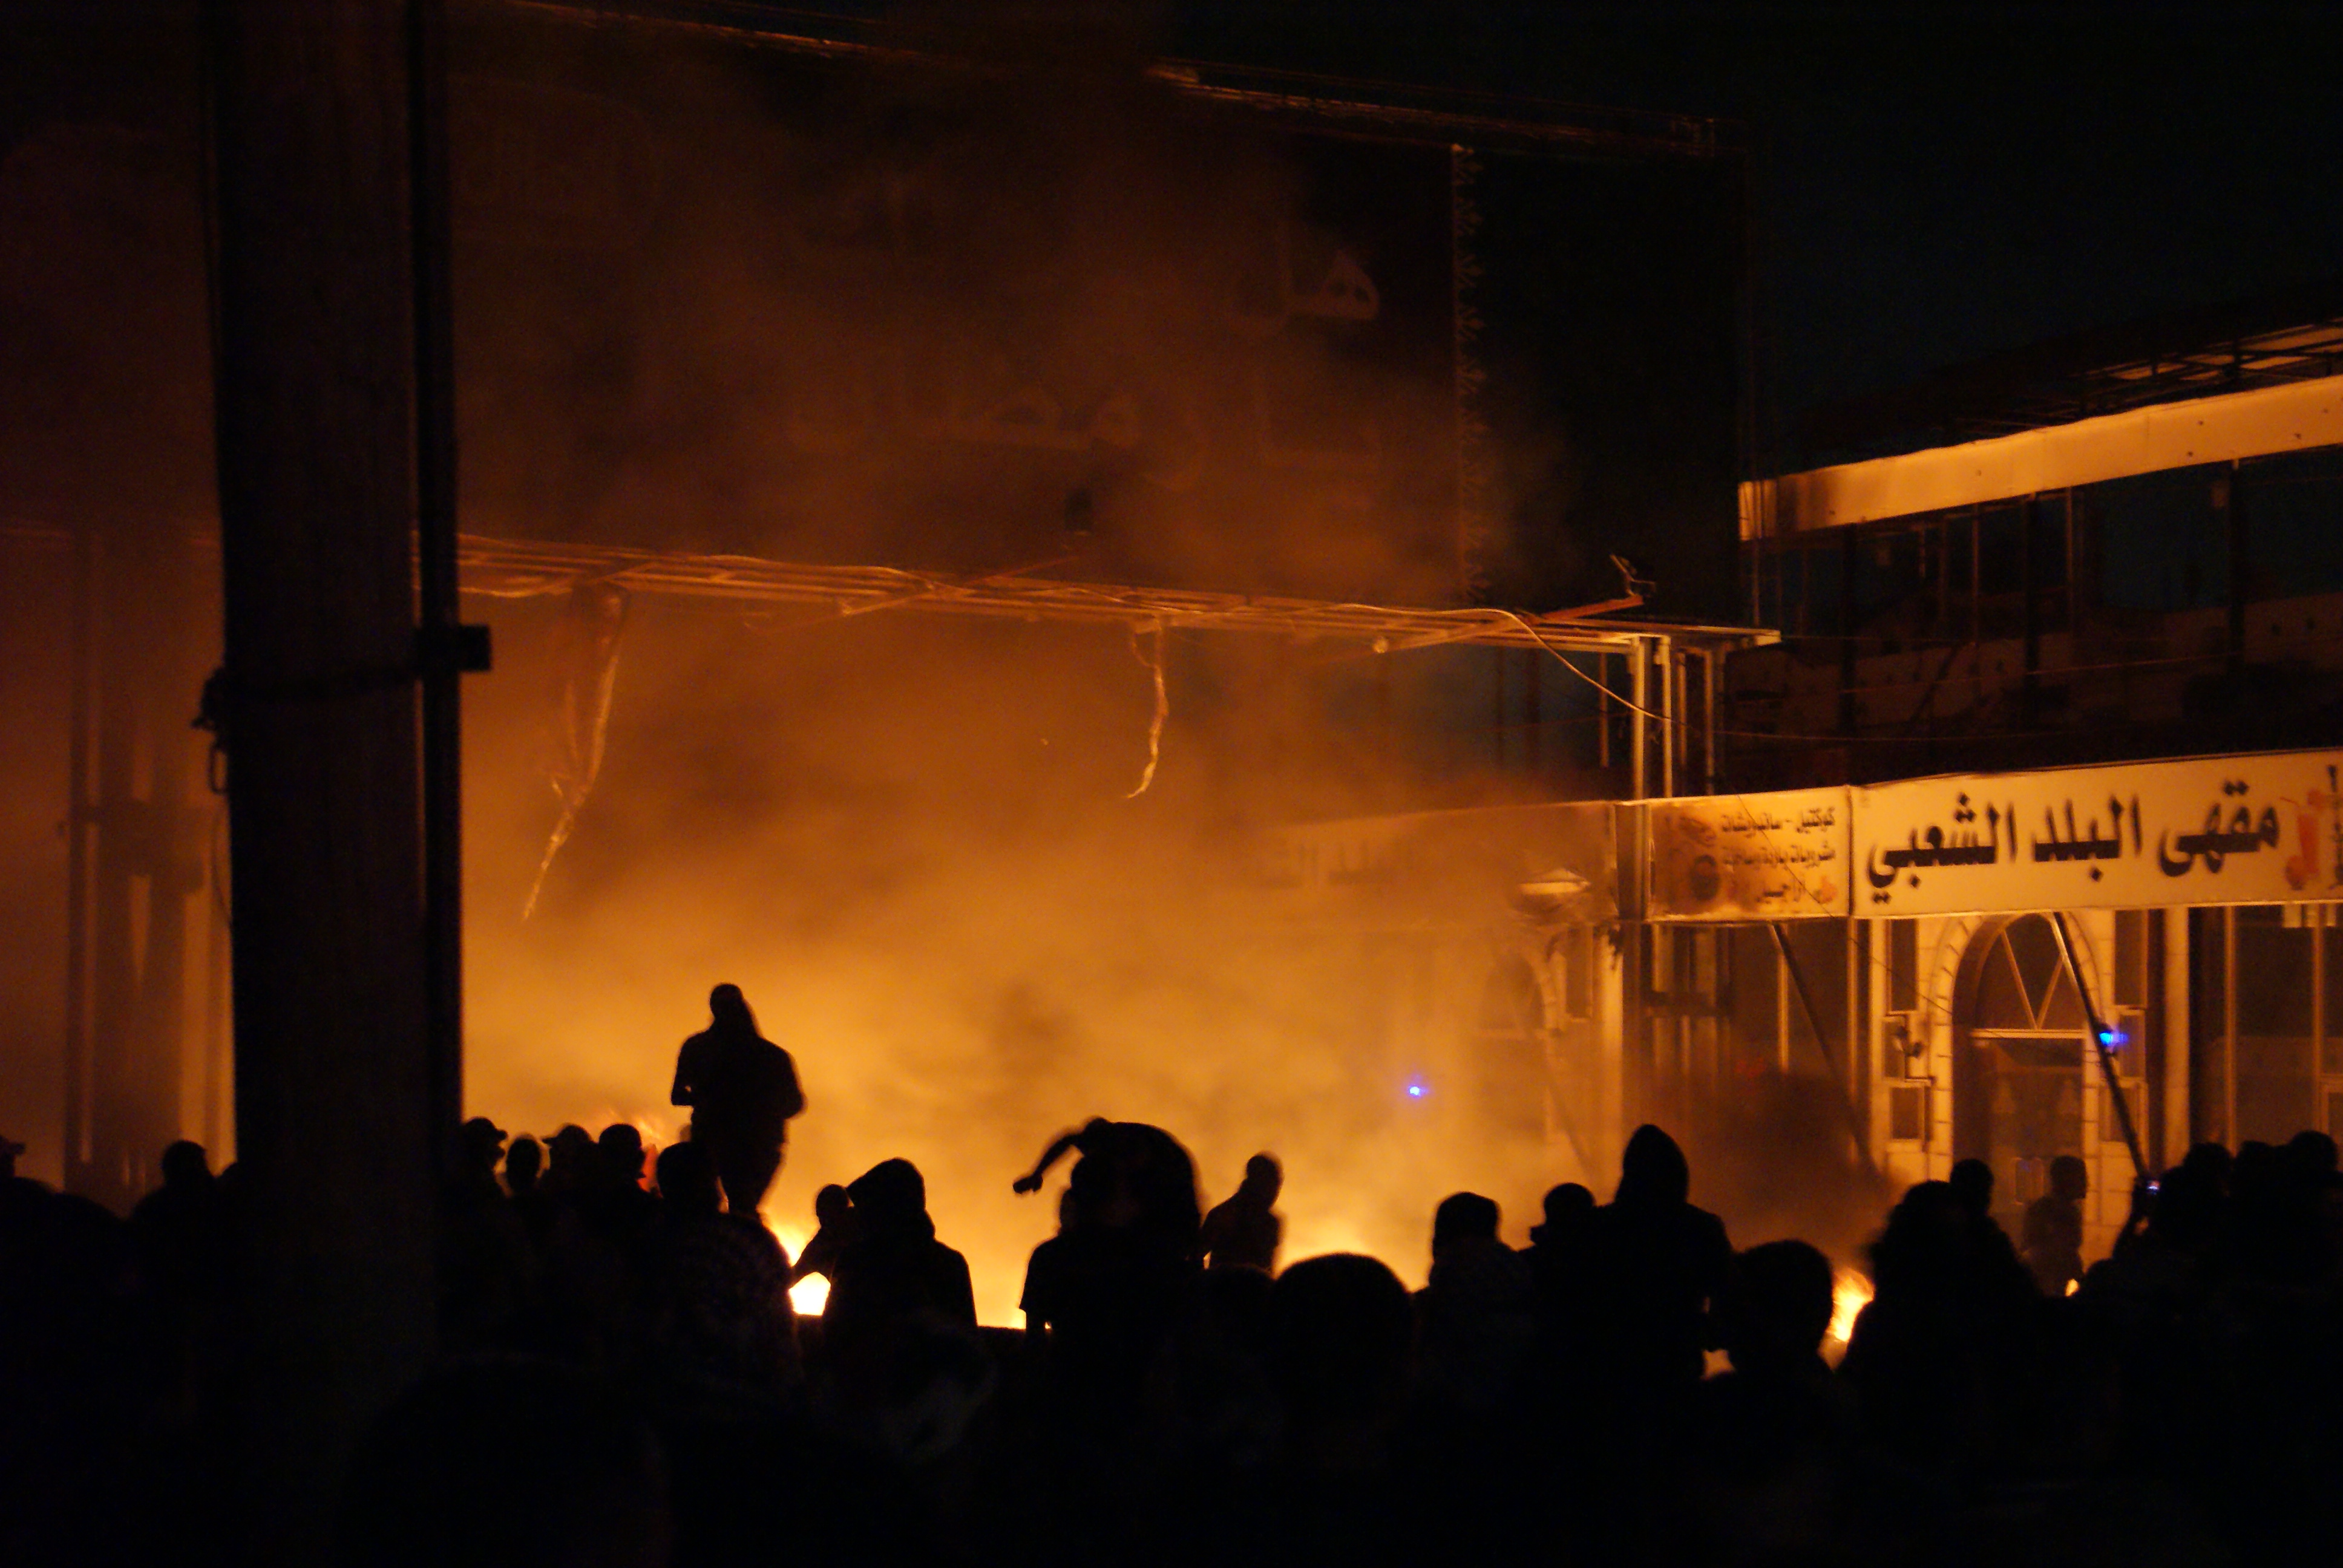 July 23, 2014 protests in Ramallah, West Bank ((c) Khalid Diab)